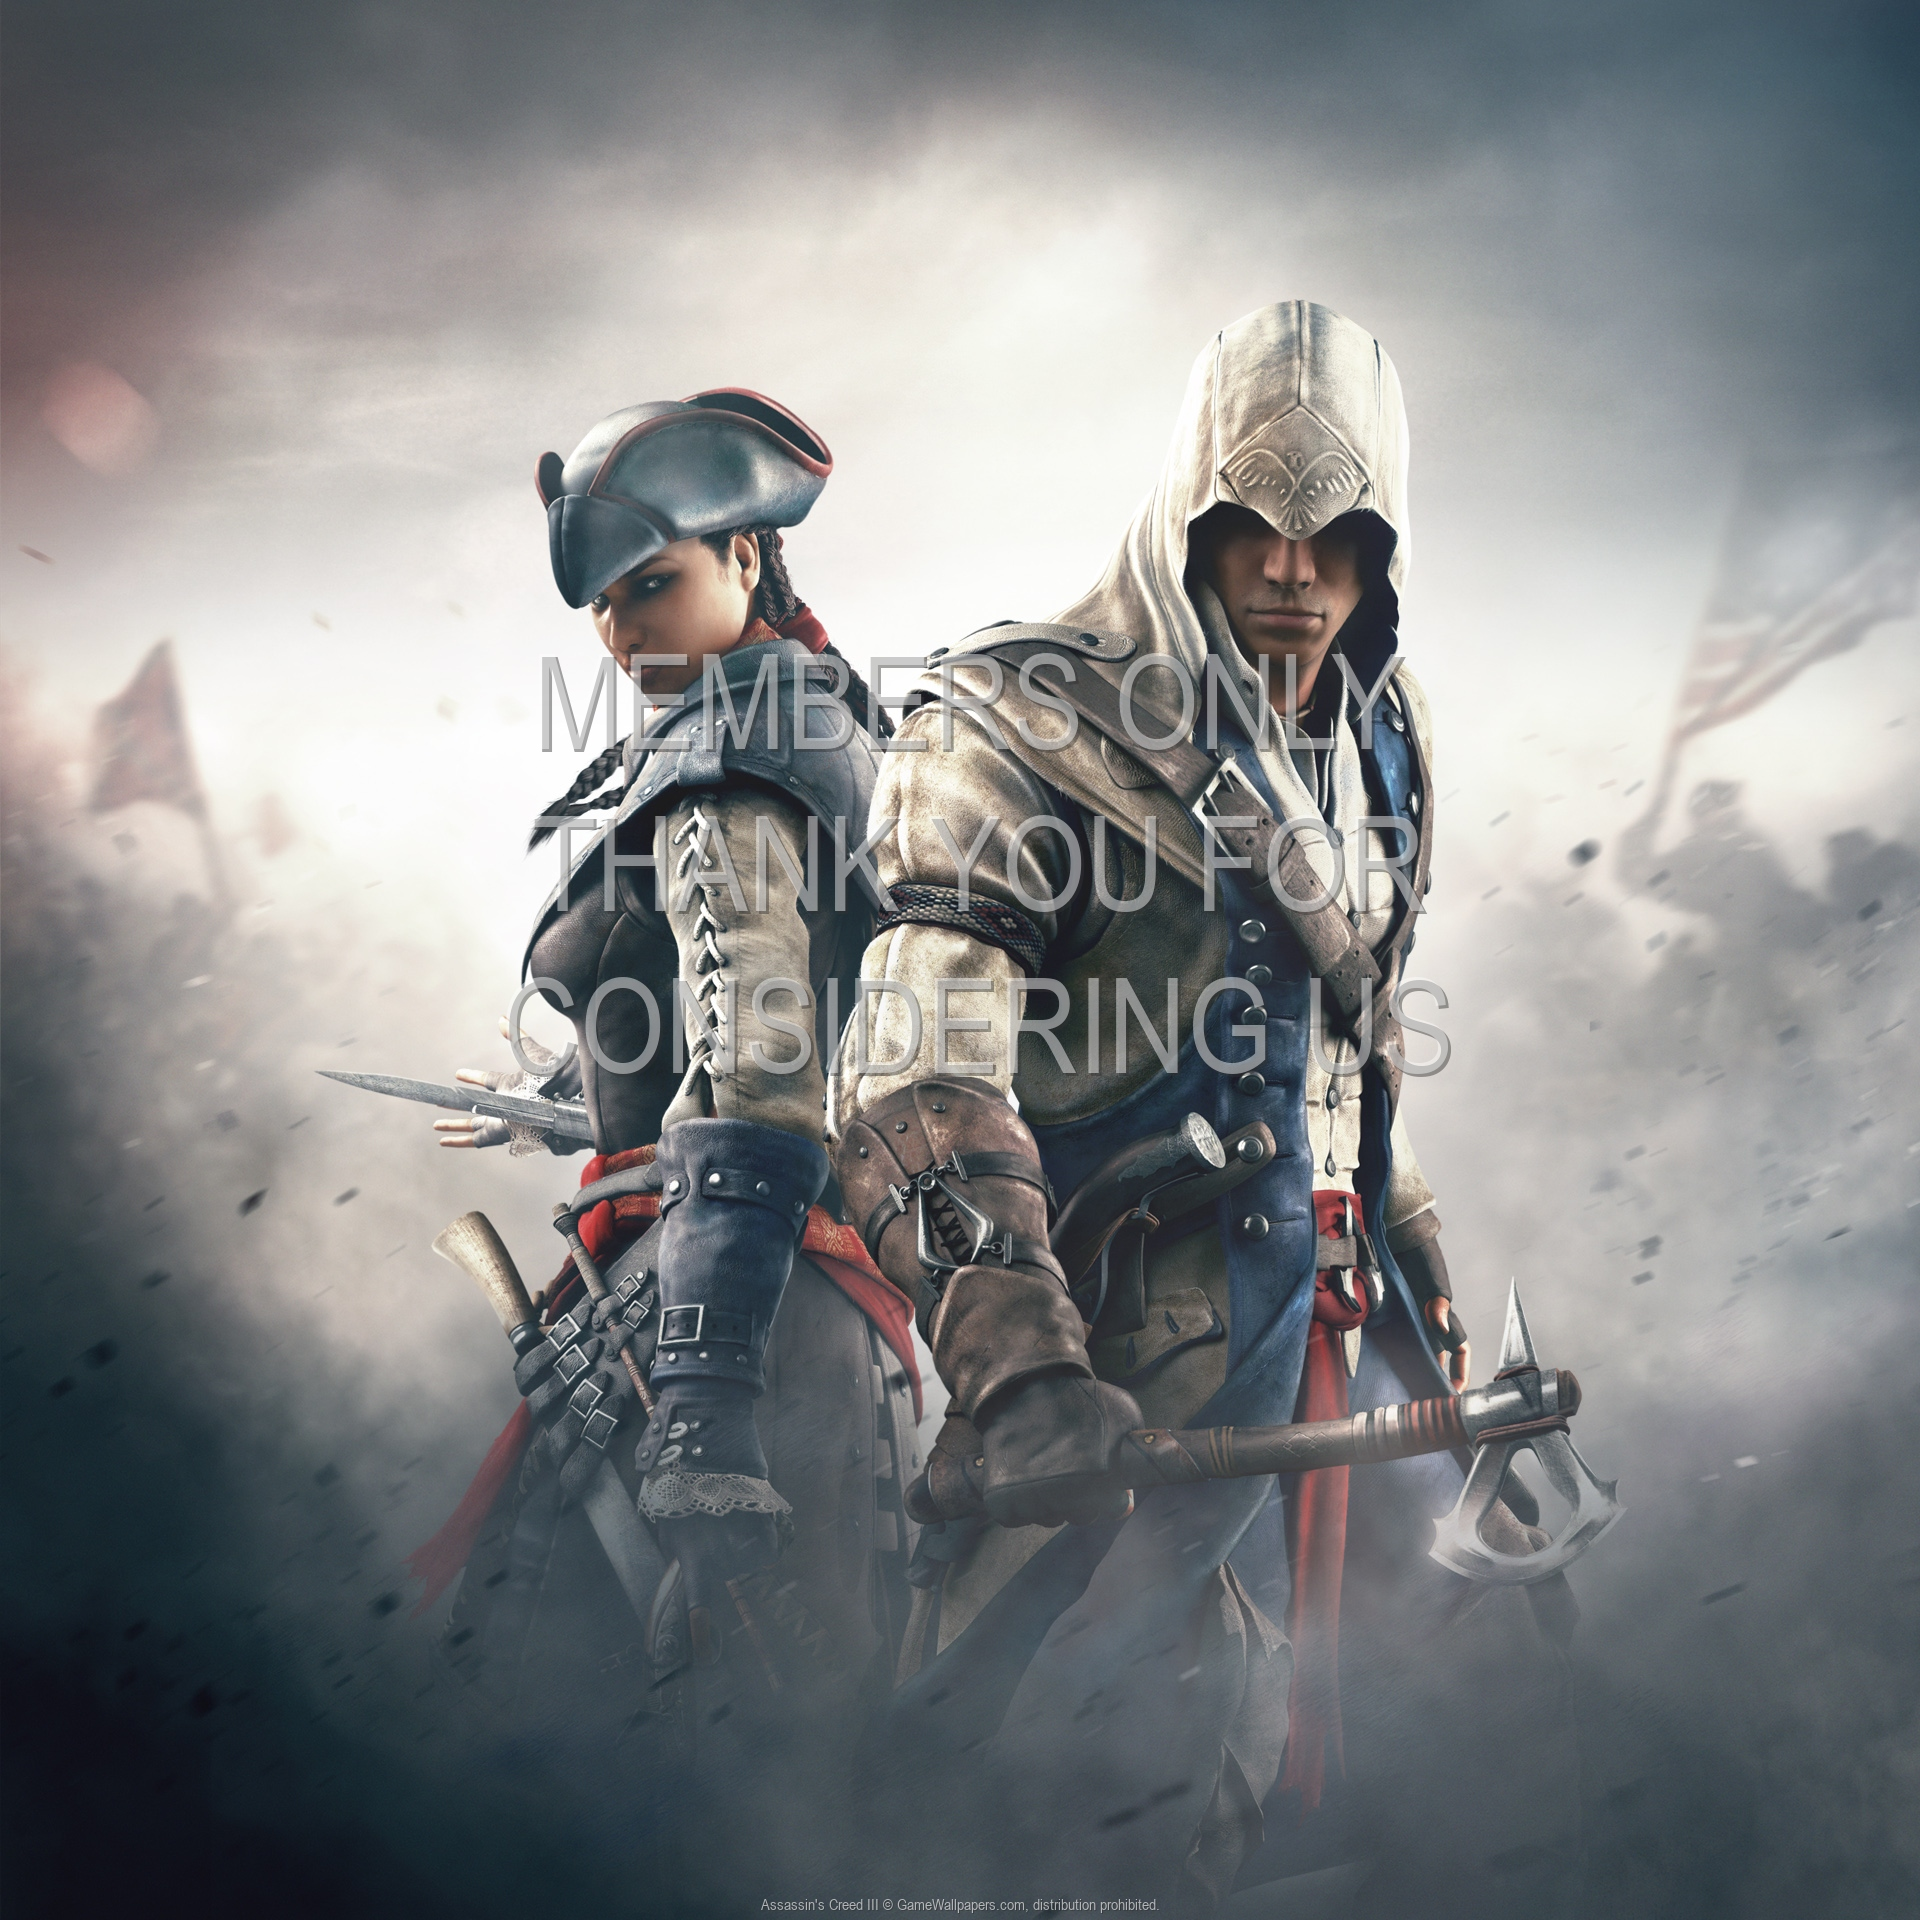 Assassin's Creed III 1920x1080 Mobile wallpaper or background 15